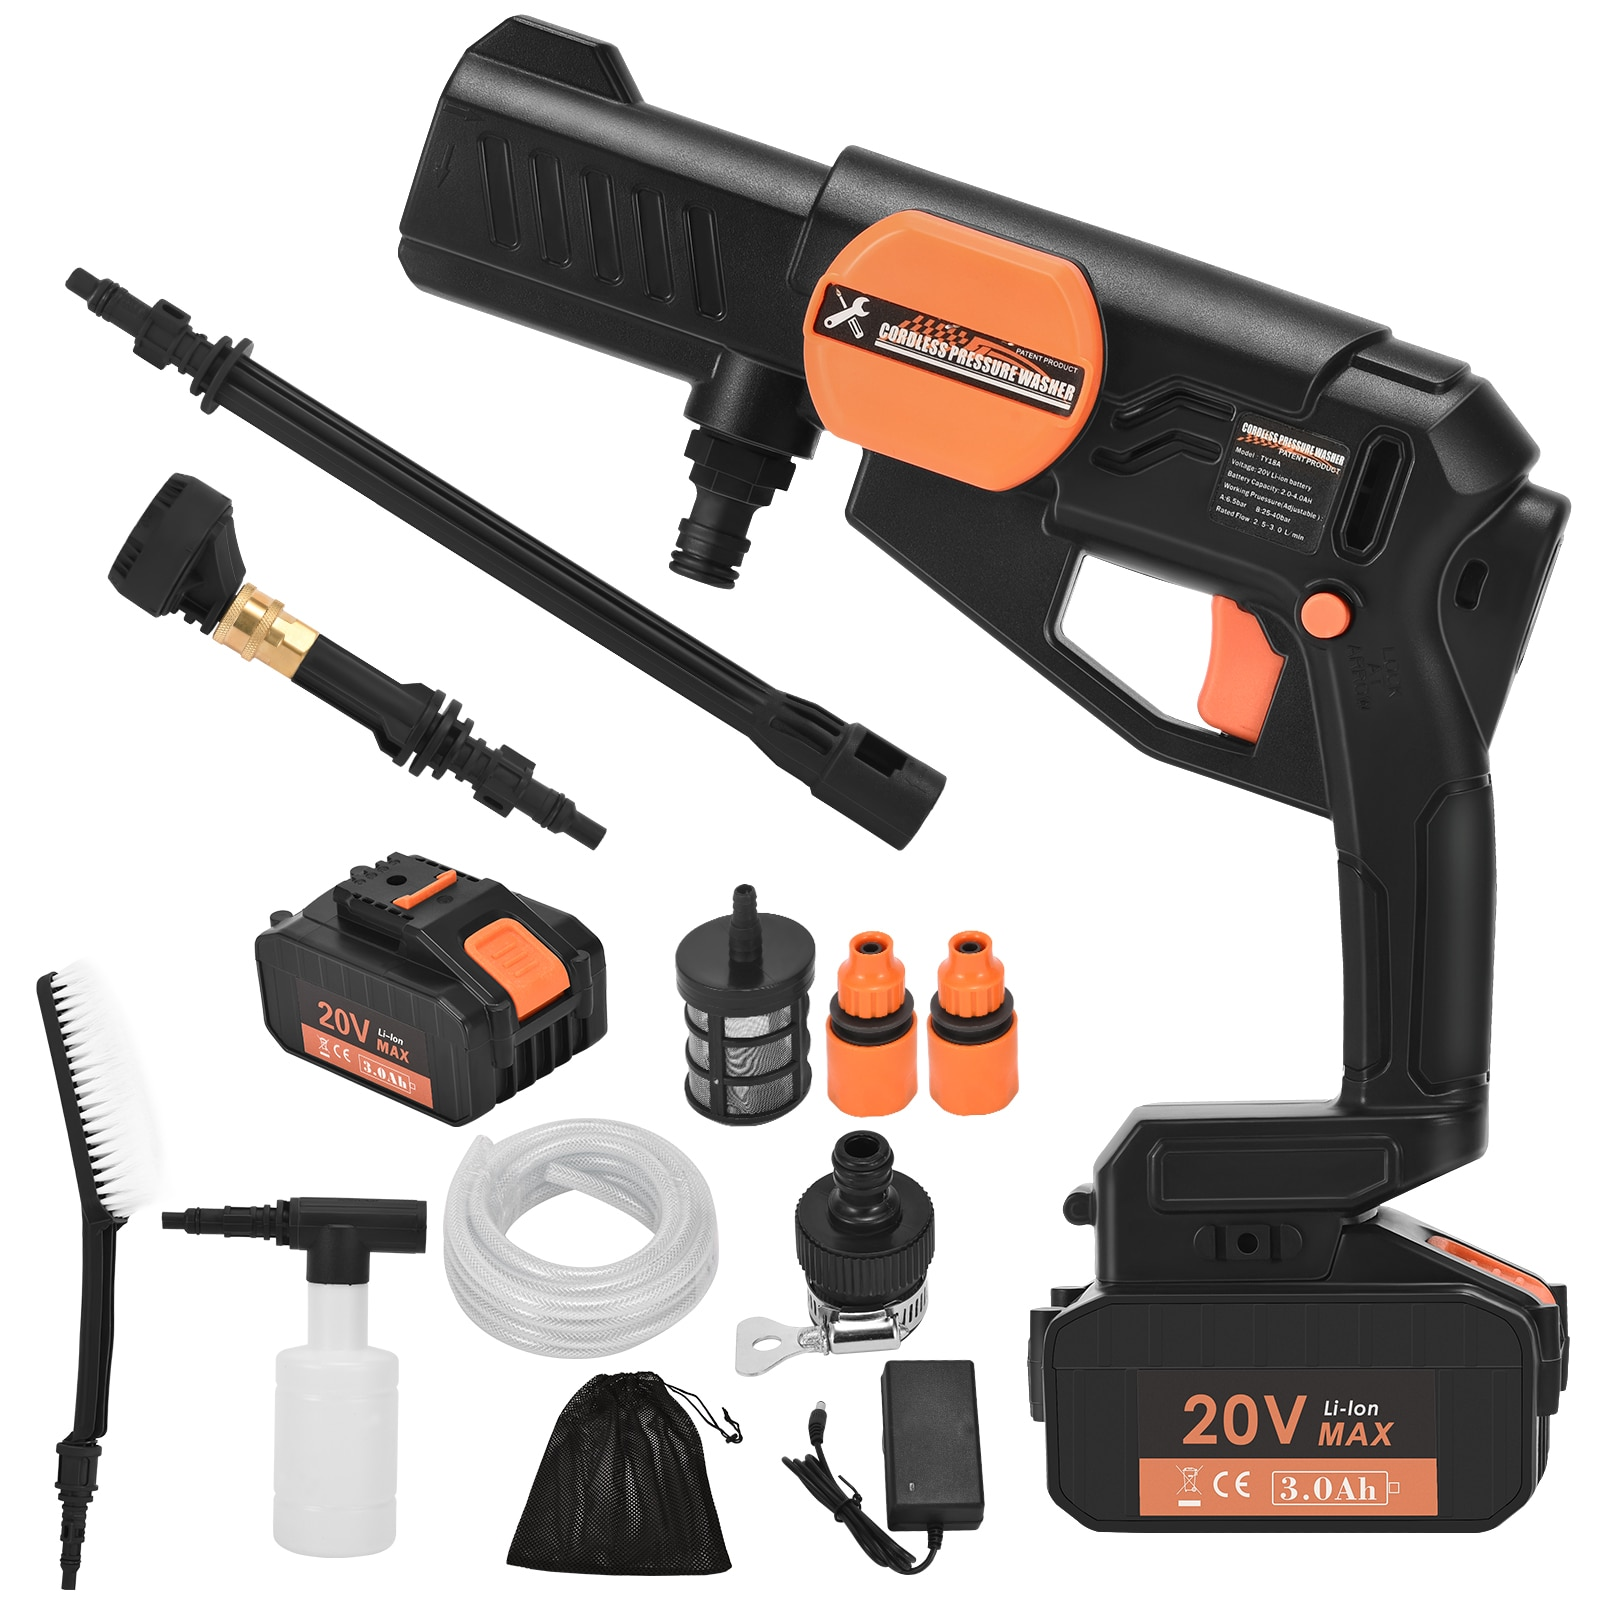 Cordless Electric Pressure Washer Gun Portable Surface Cleaner For Smaller Jobs Clean Washer Hose Car Wash 5-In-1 Nozzle 3000mah enlarge